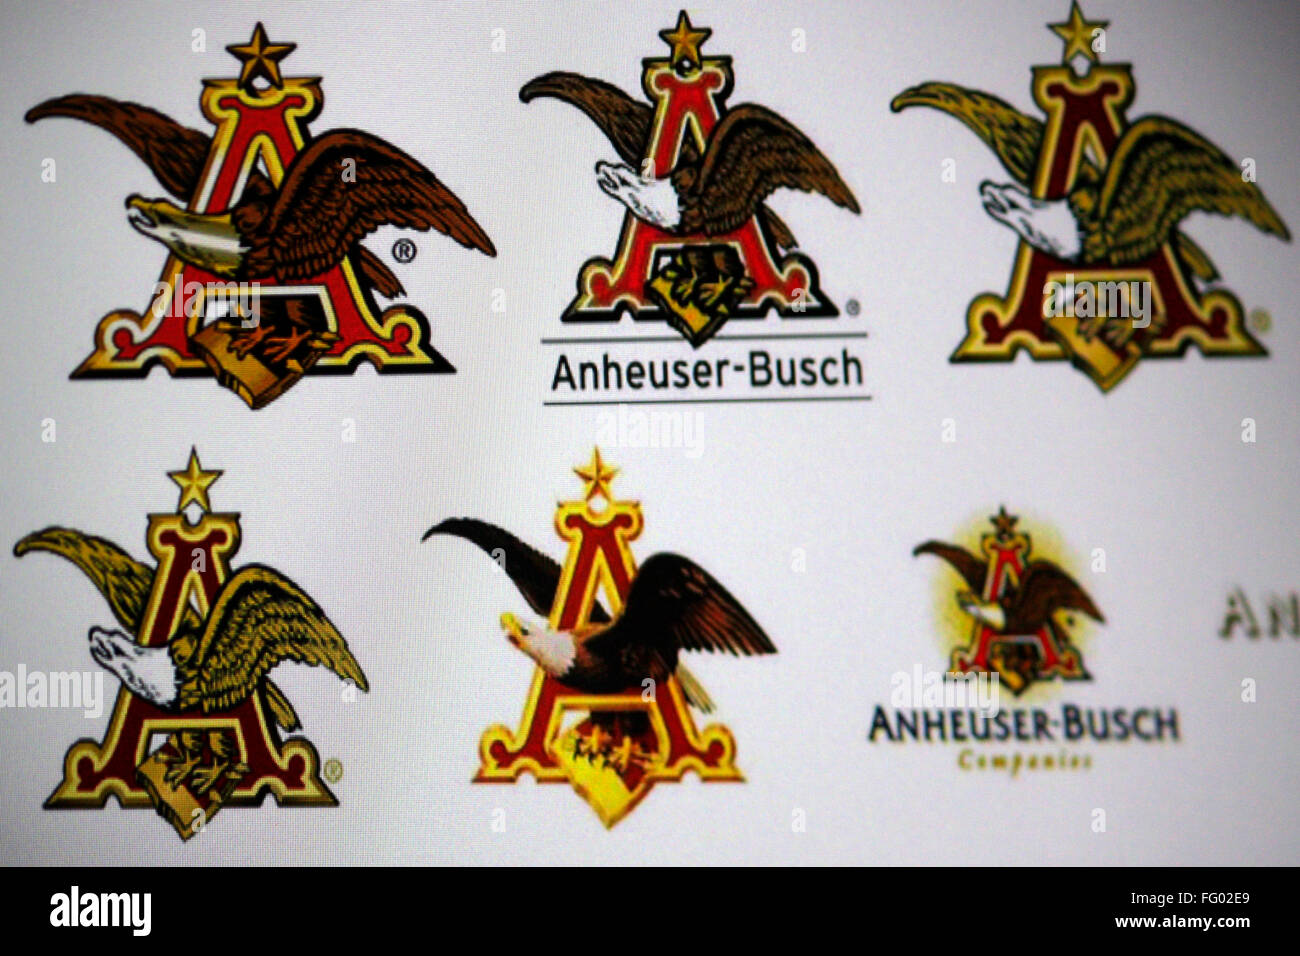 Anheuser Stock Photos Anheuser Stock Images Alamy